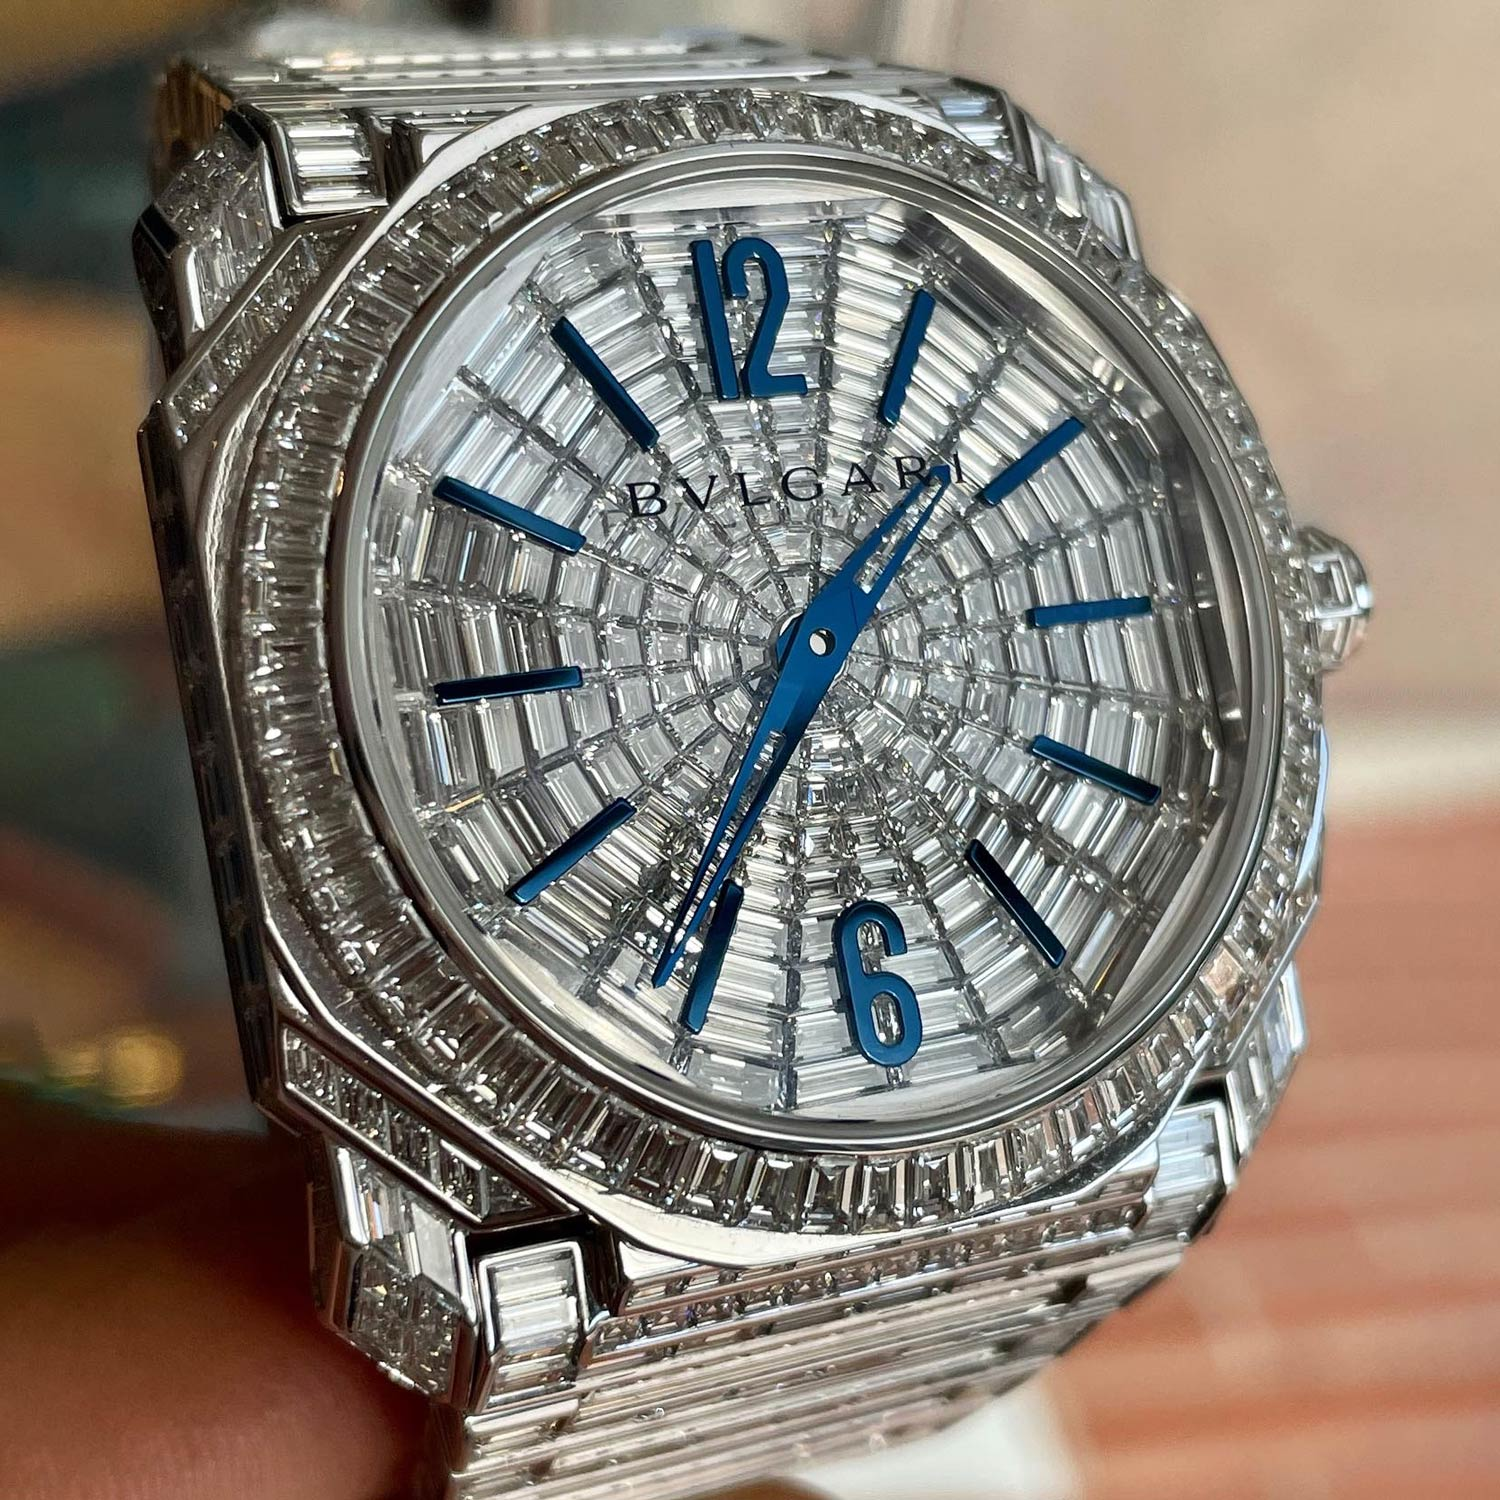 Lot 236 Bulgari: Extremely Precious and Very Limited-Edition Octo L'originale Automatic Wristwatch in White Gold with Full Set Pave Baguette Diamonds, Reference 103212, with Box and Papers